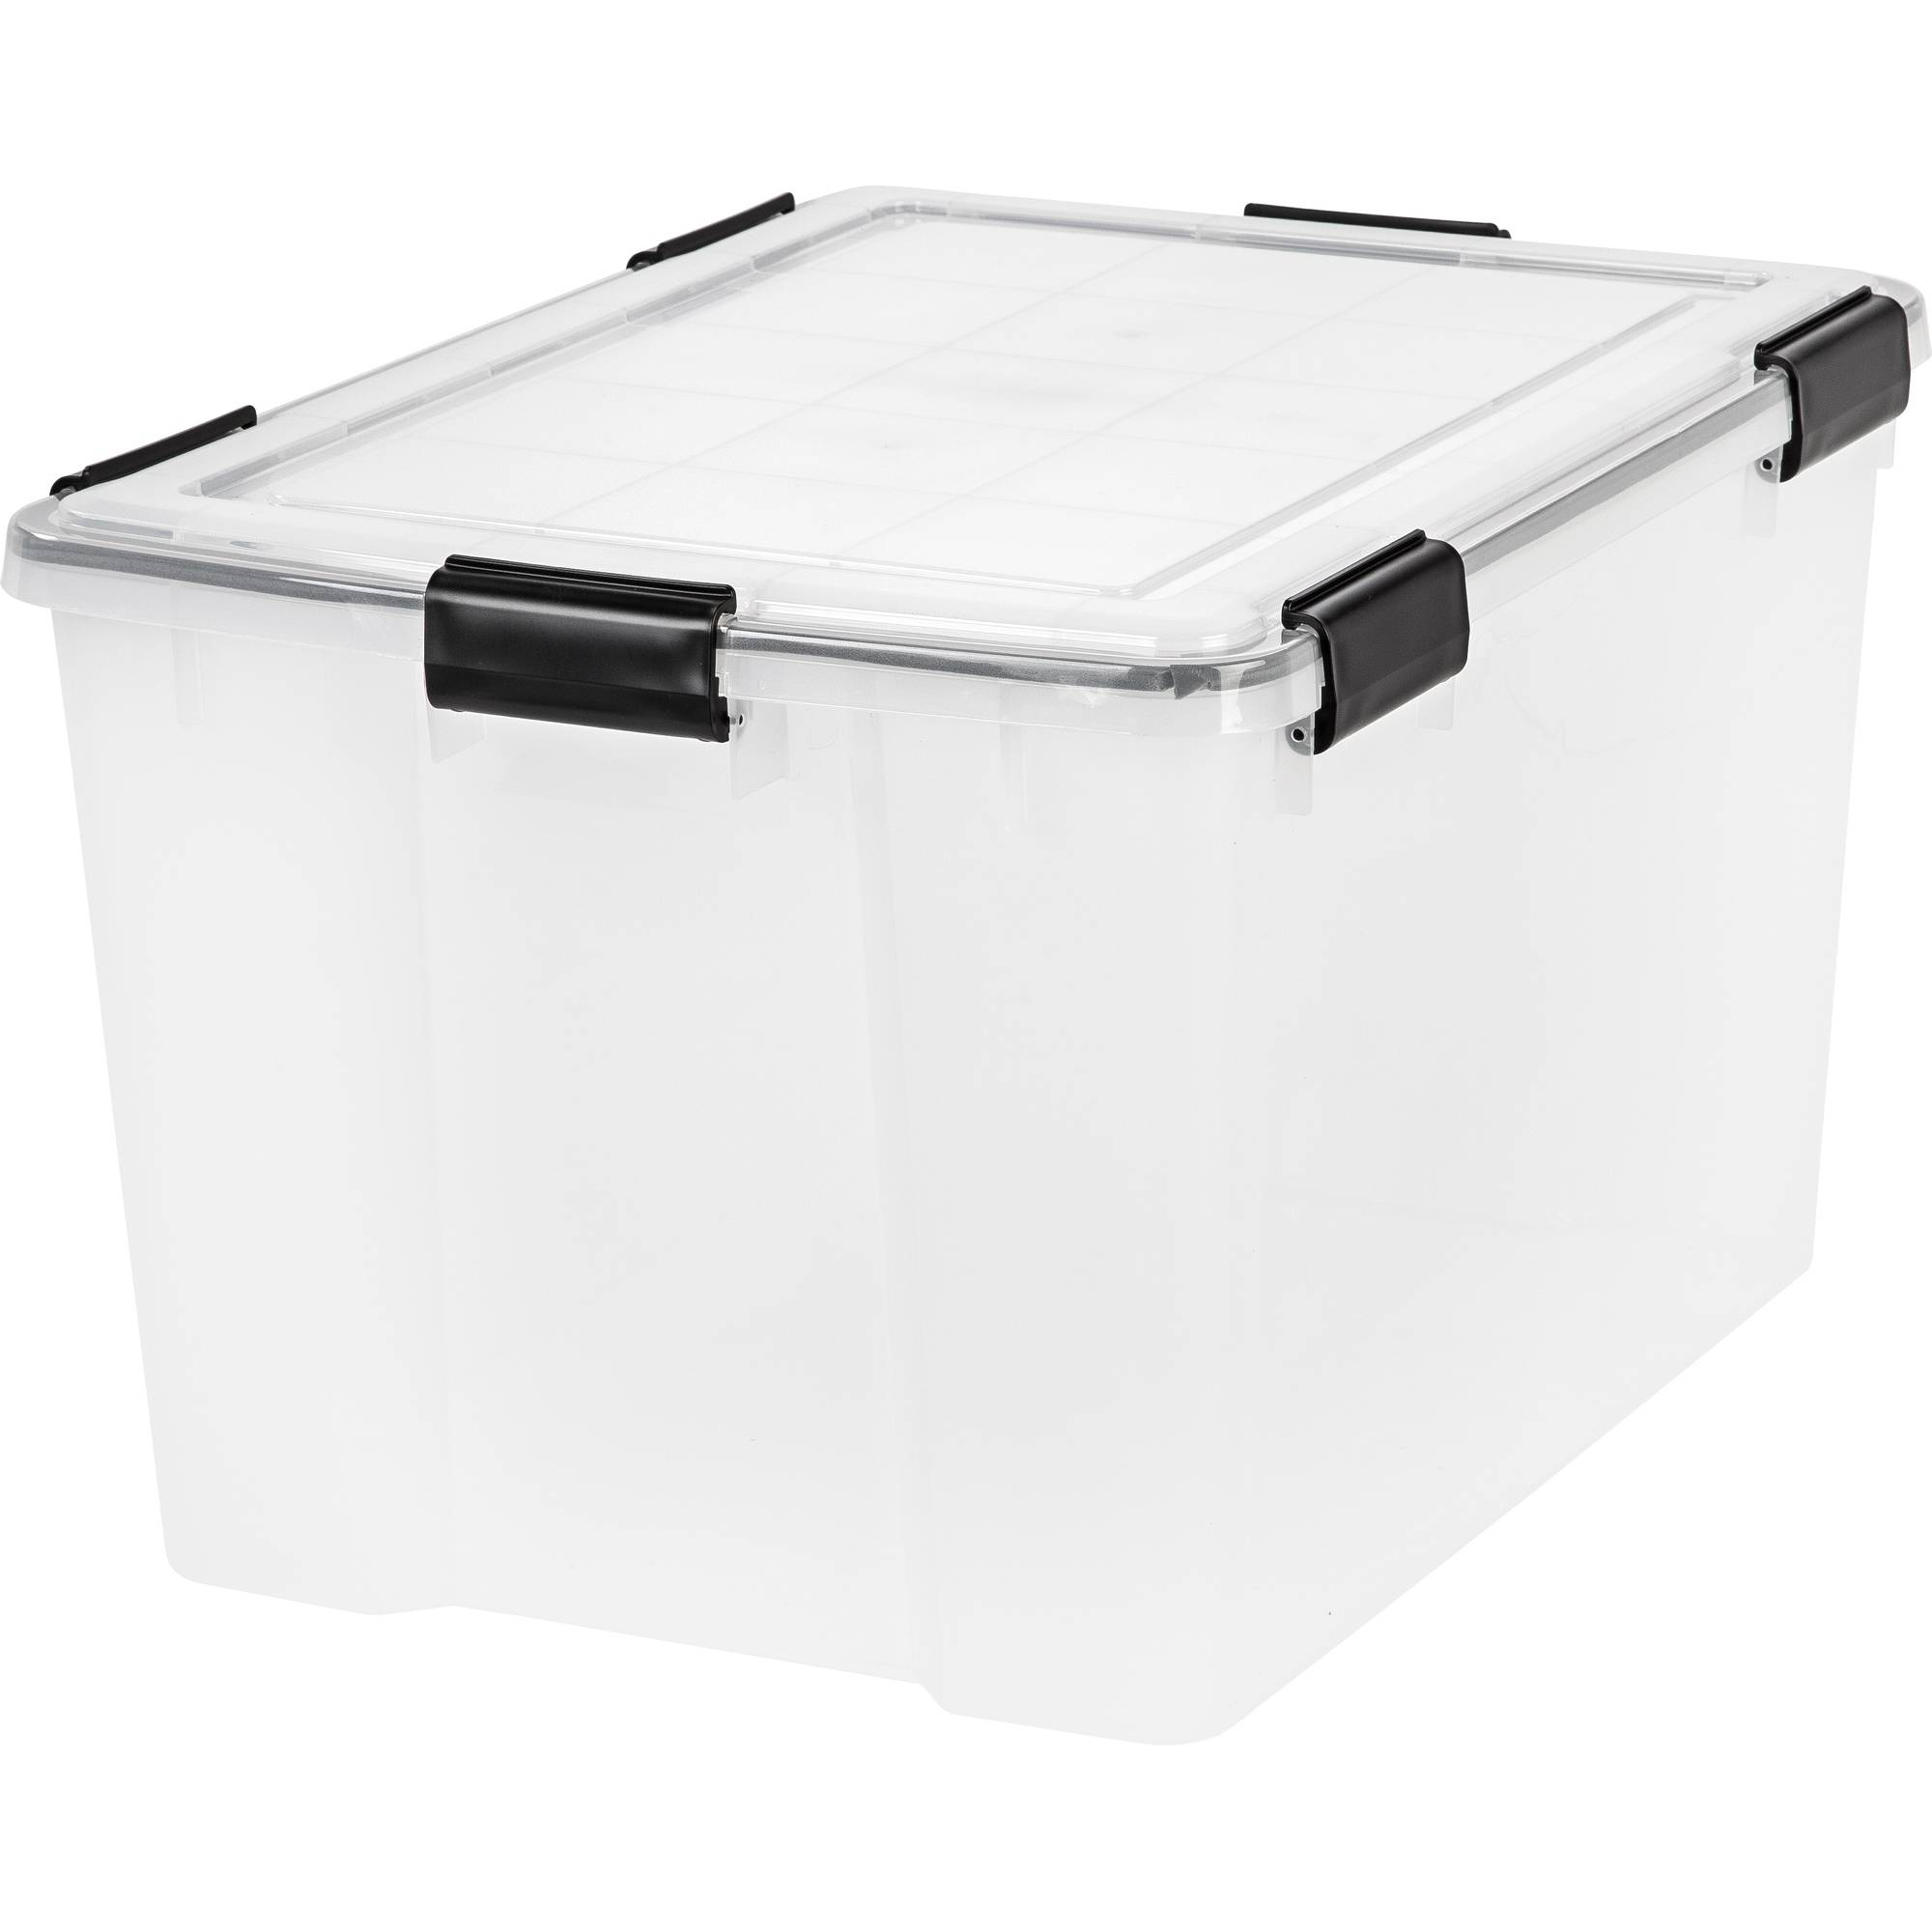 WEATHERTIGHT® Storage Box, Clear (Available